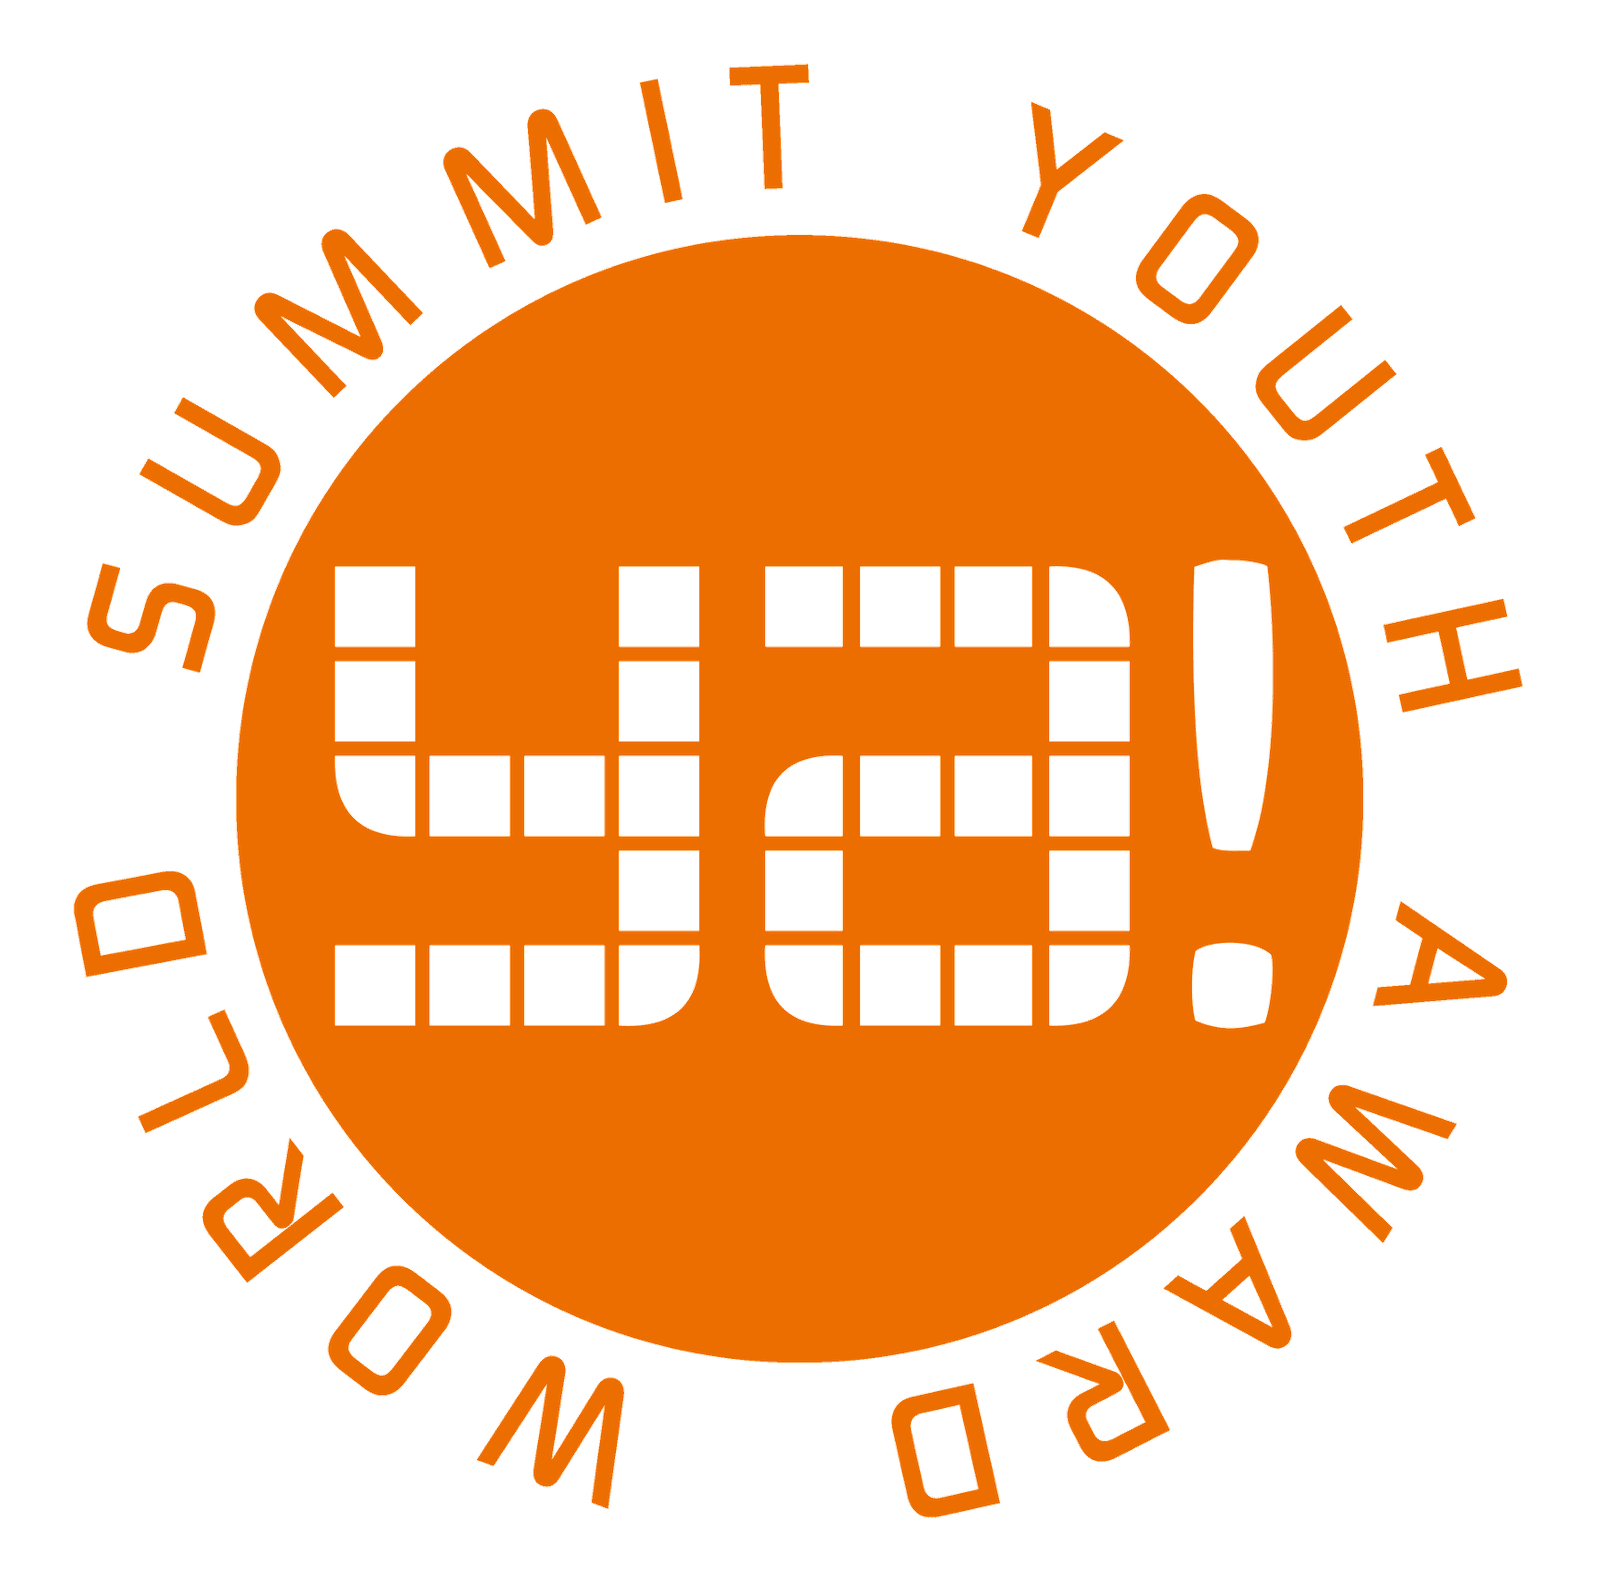 World-youth-summit-award-2013